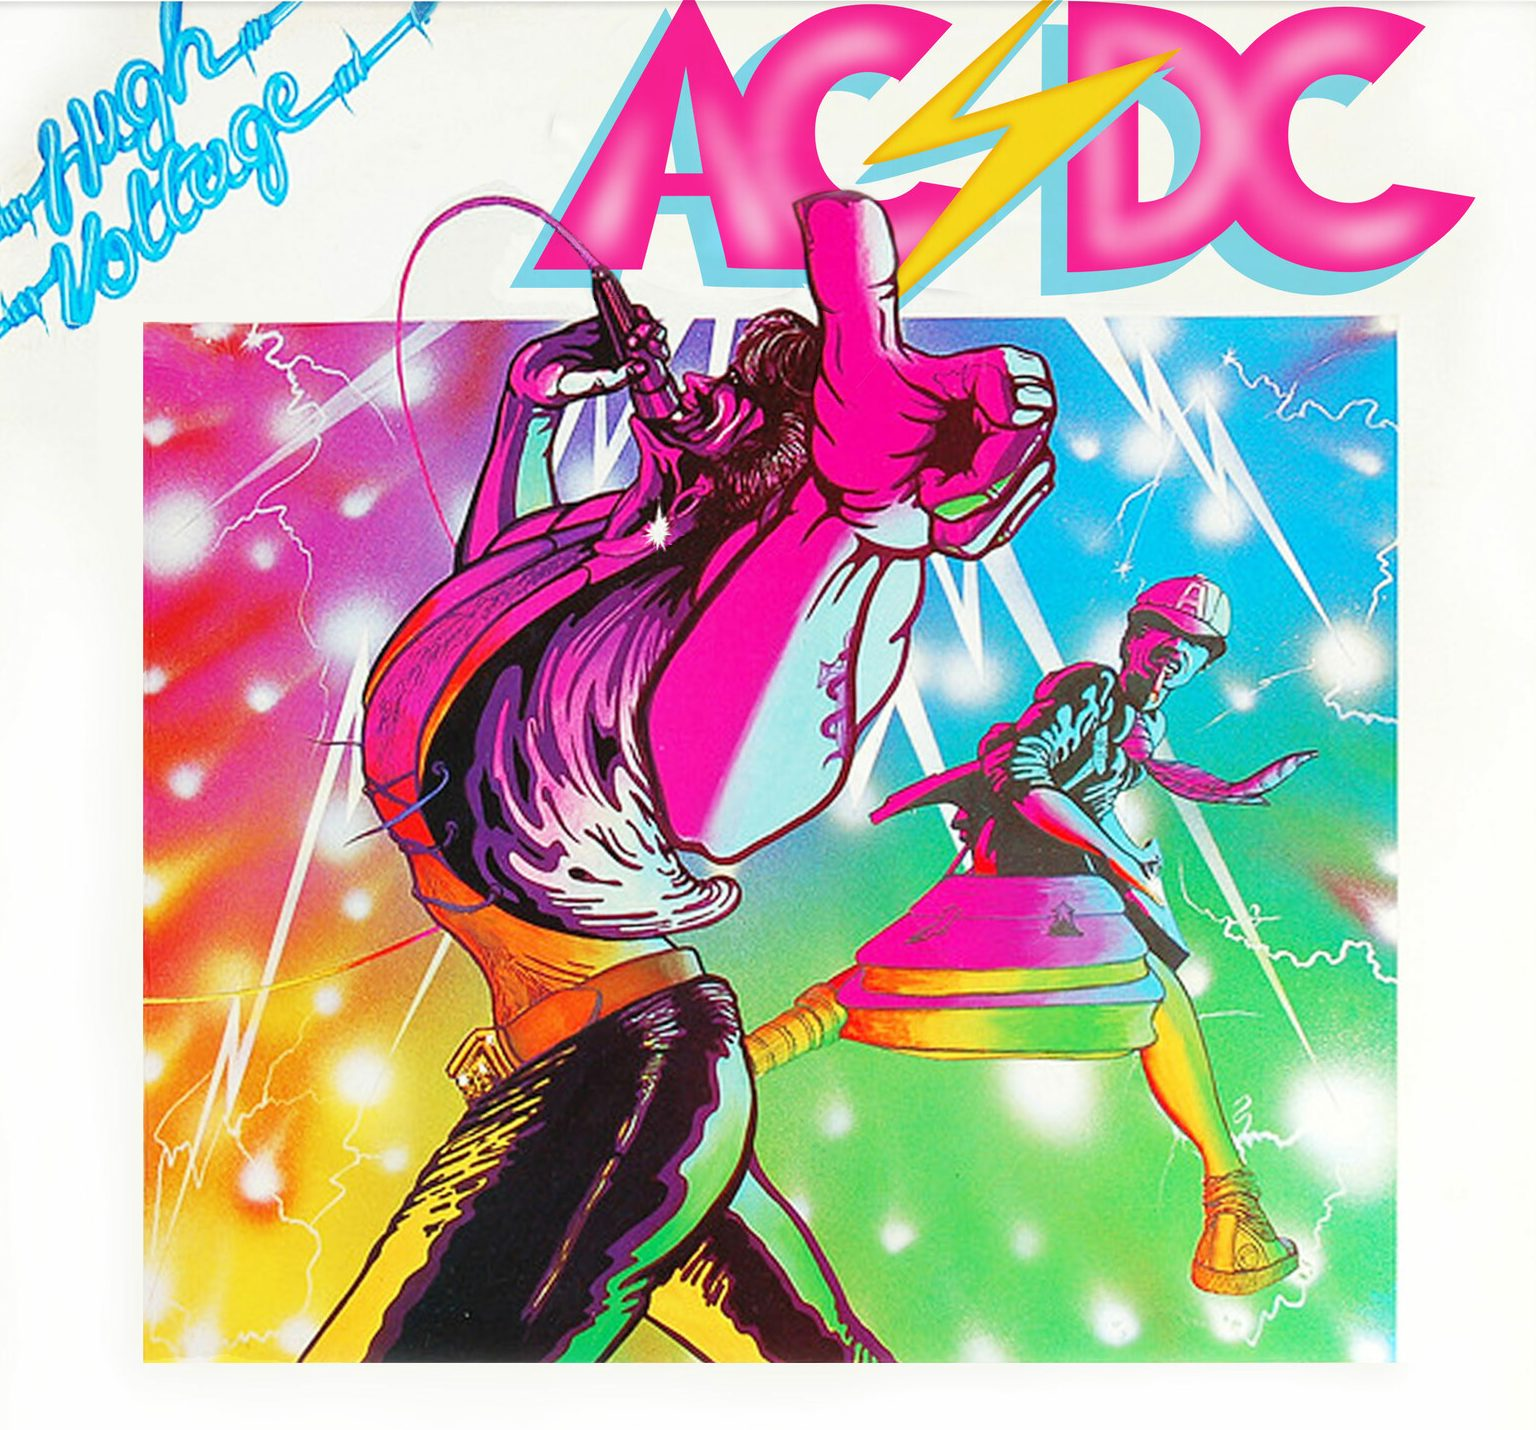 dave field ac dc logo e1616594447647 20 Things You Never Knew About AC/DC